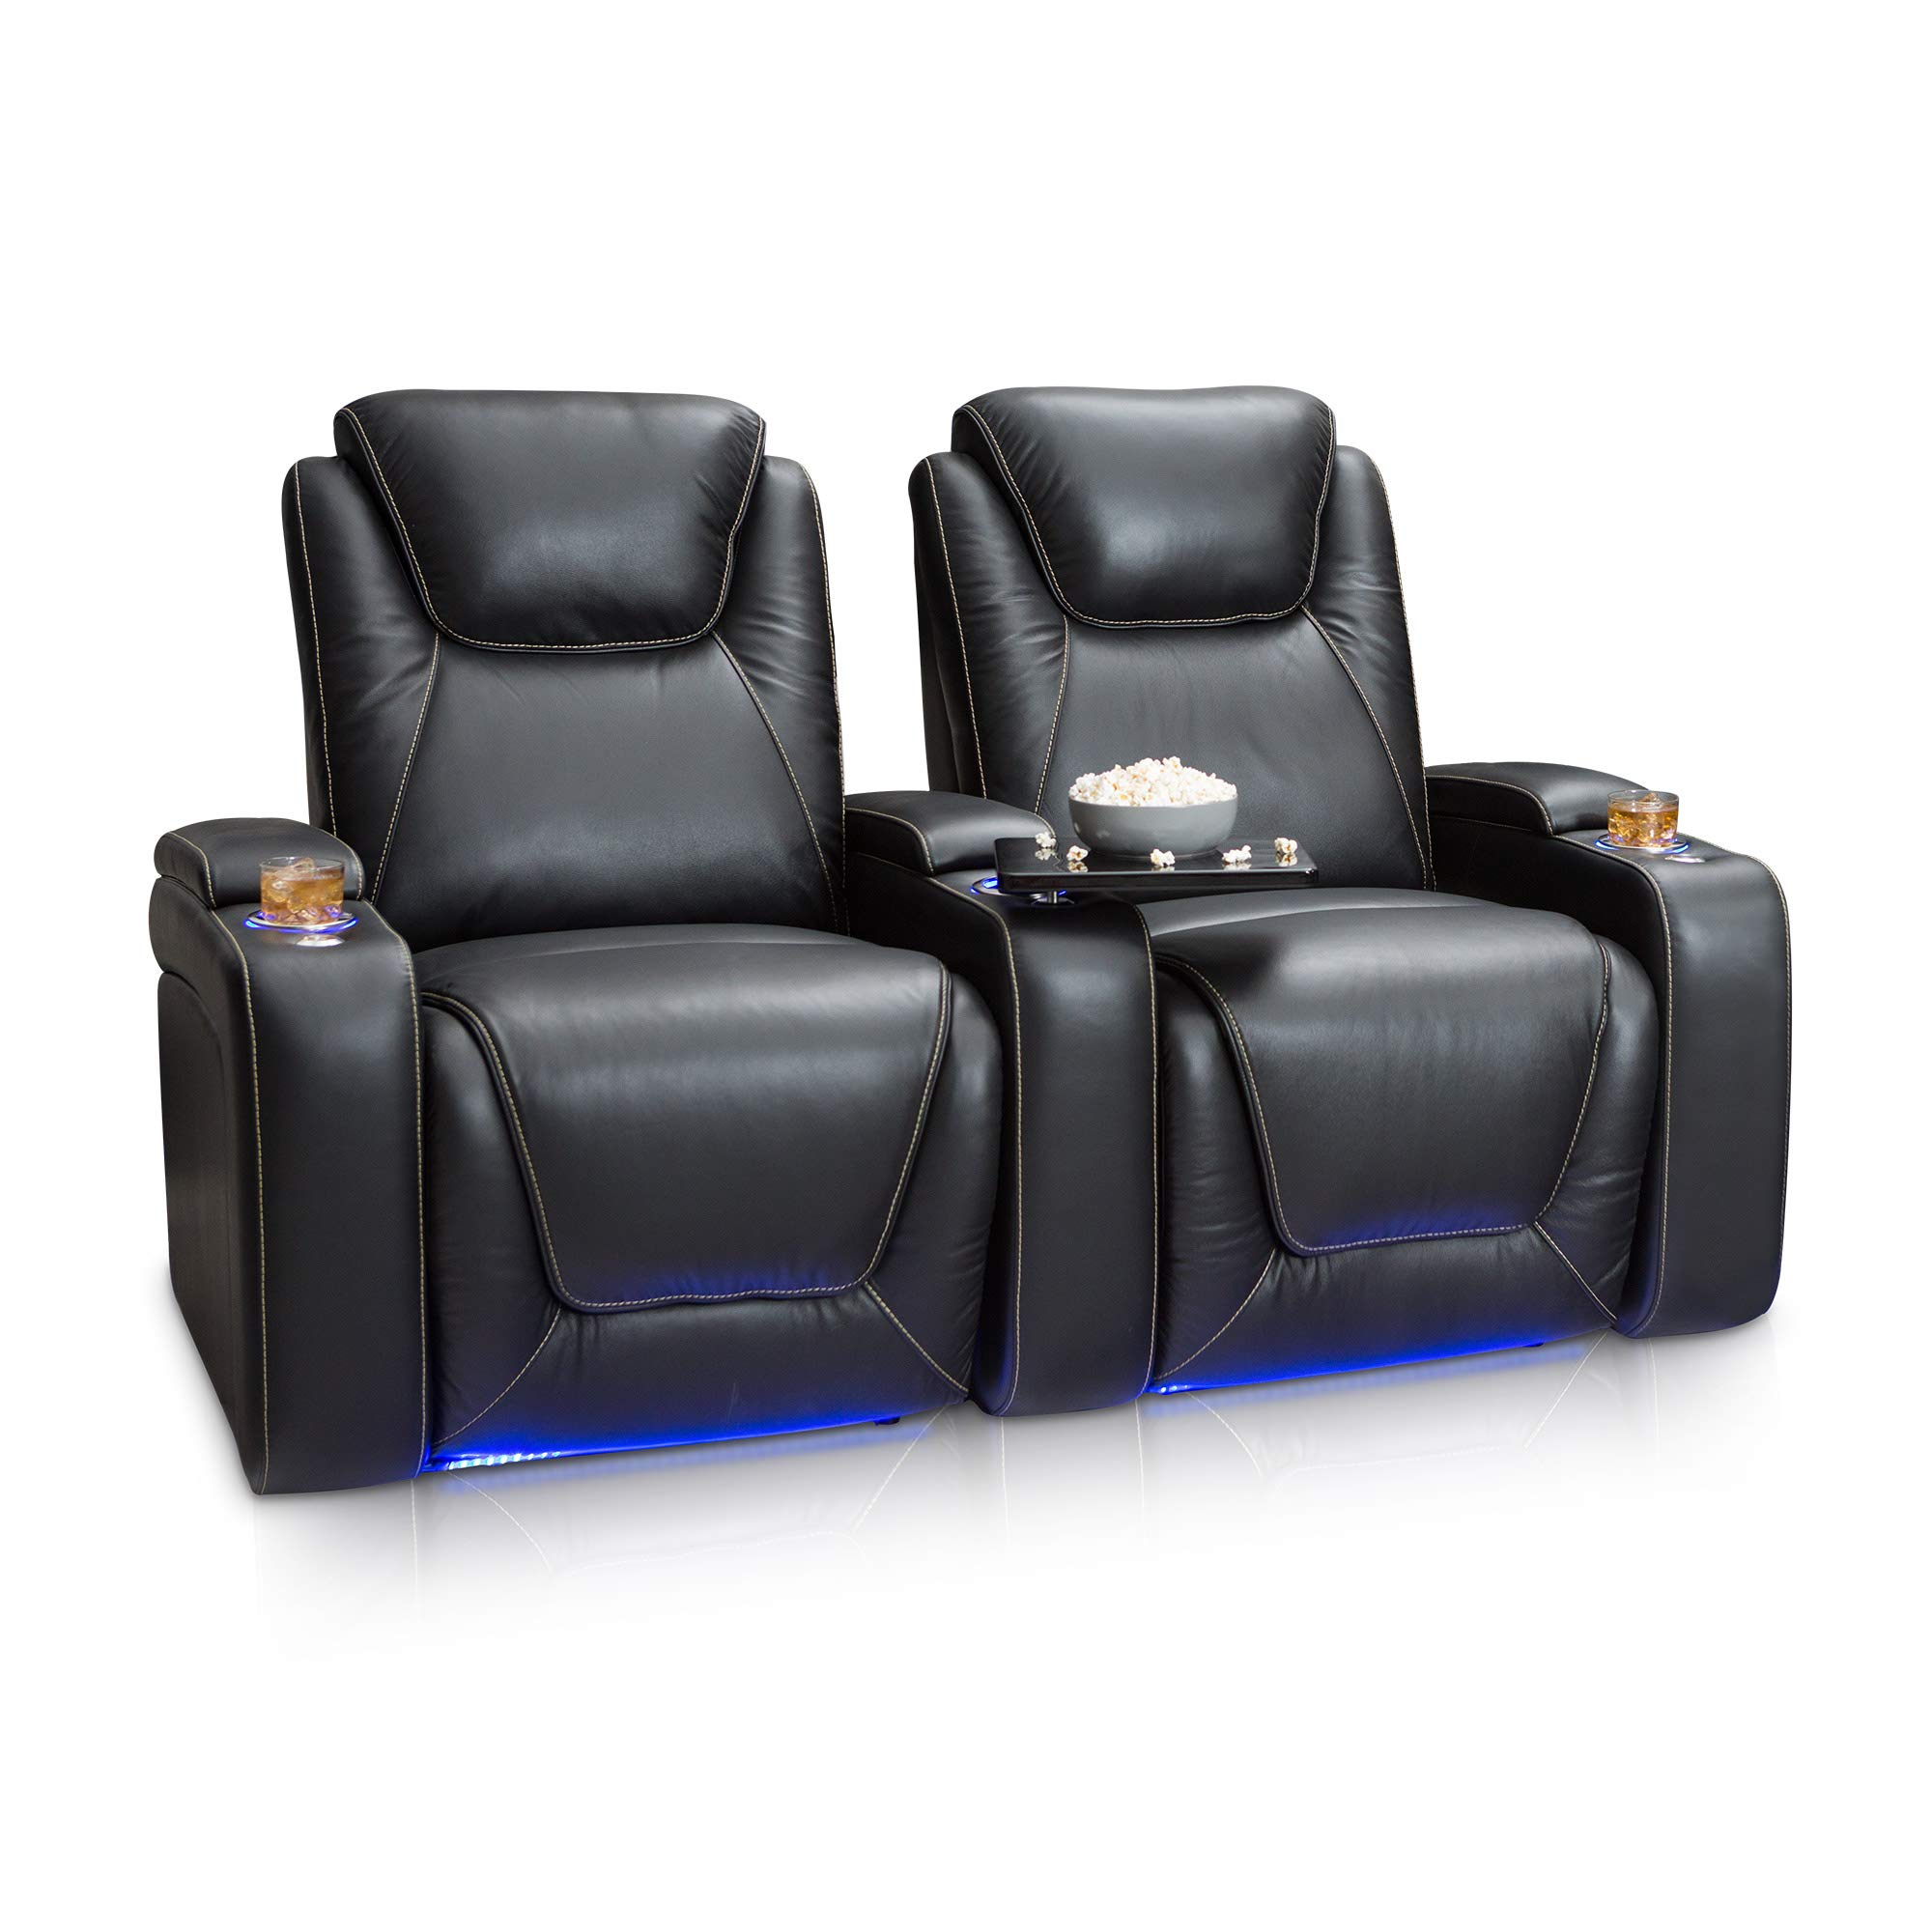 Seatcraft Equinox Home Theater Seating Power Recline Leather (Row of 2, Black) by Seatcraft